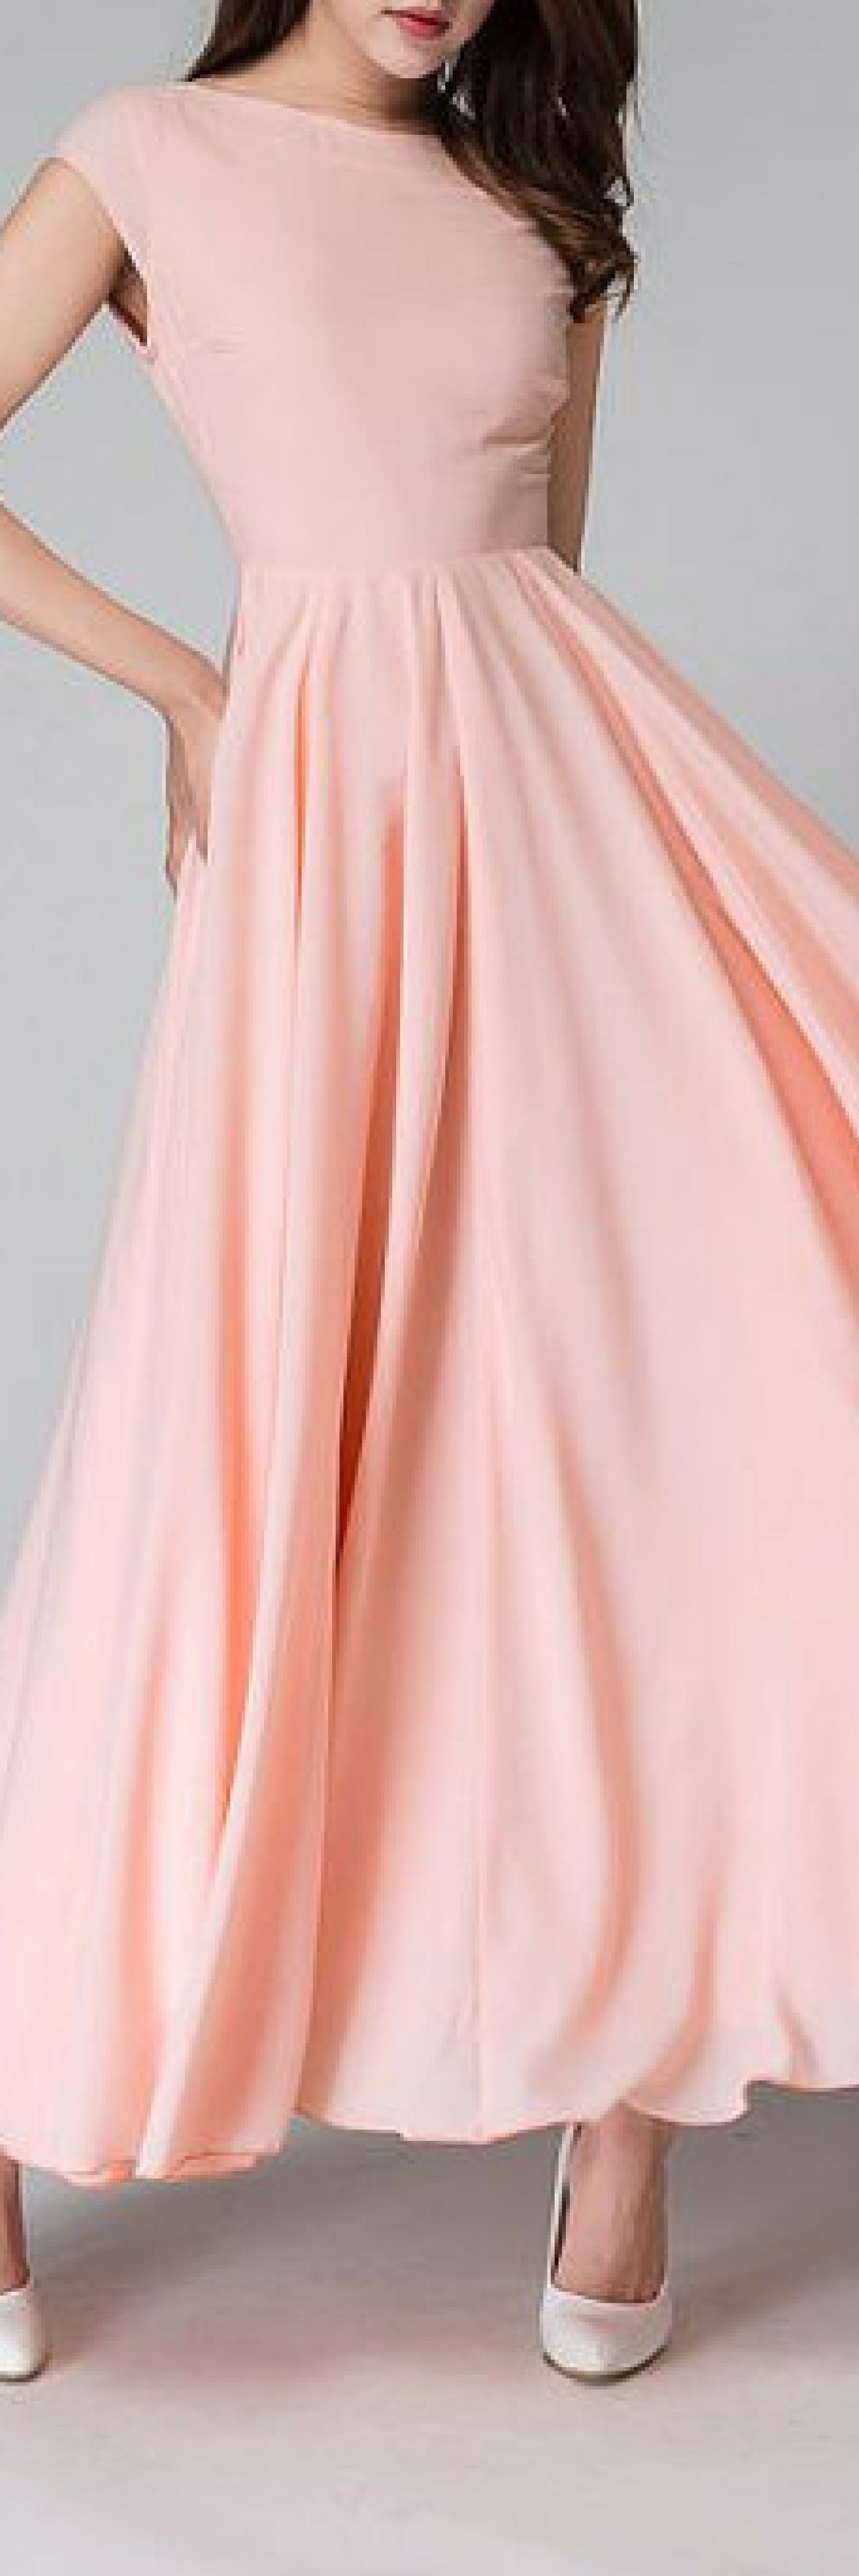 Pink long dress maxi dress maxi prom dress v neck dress cap